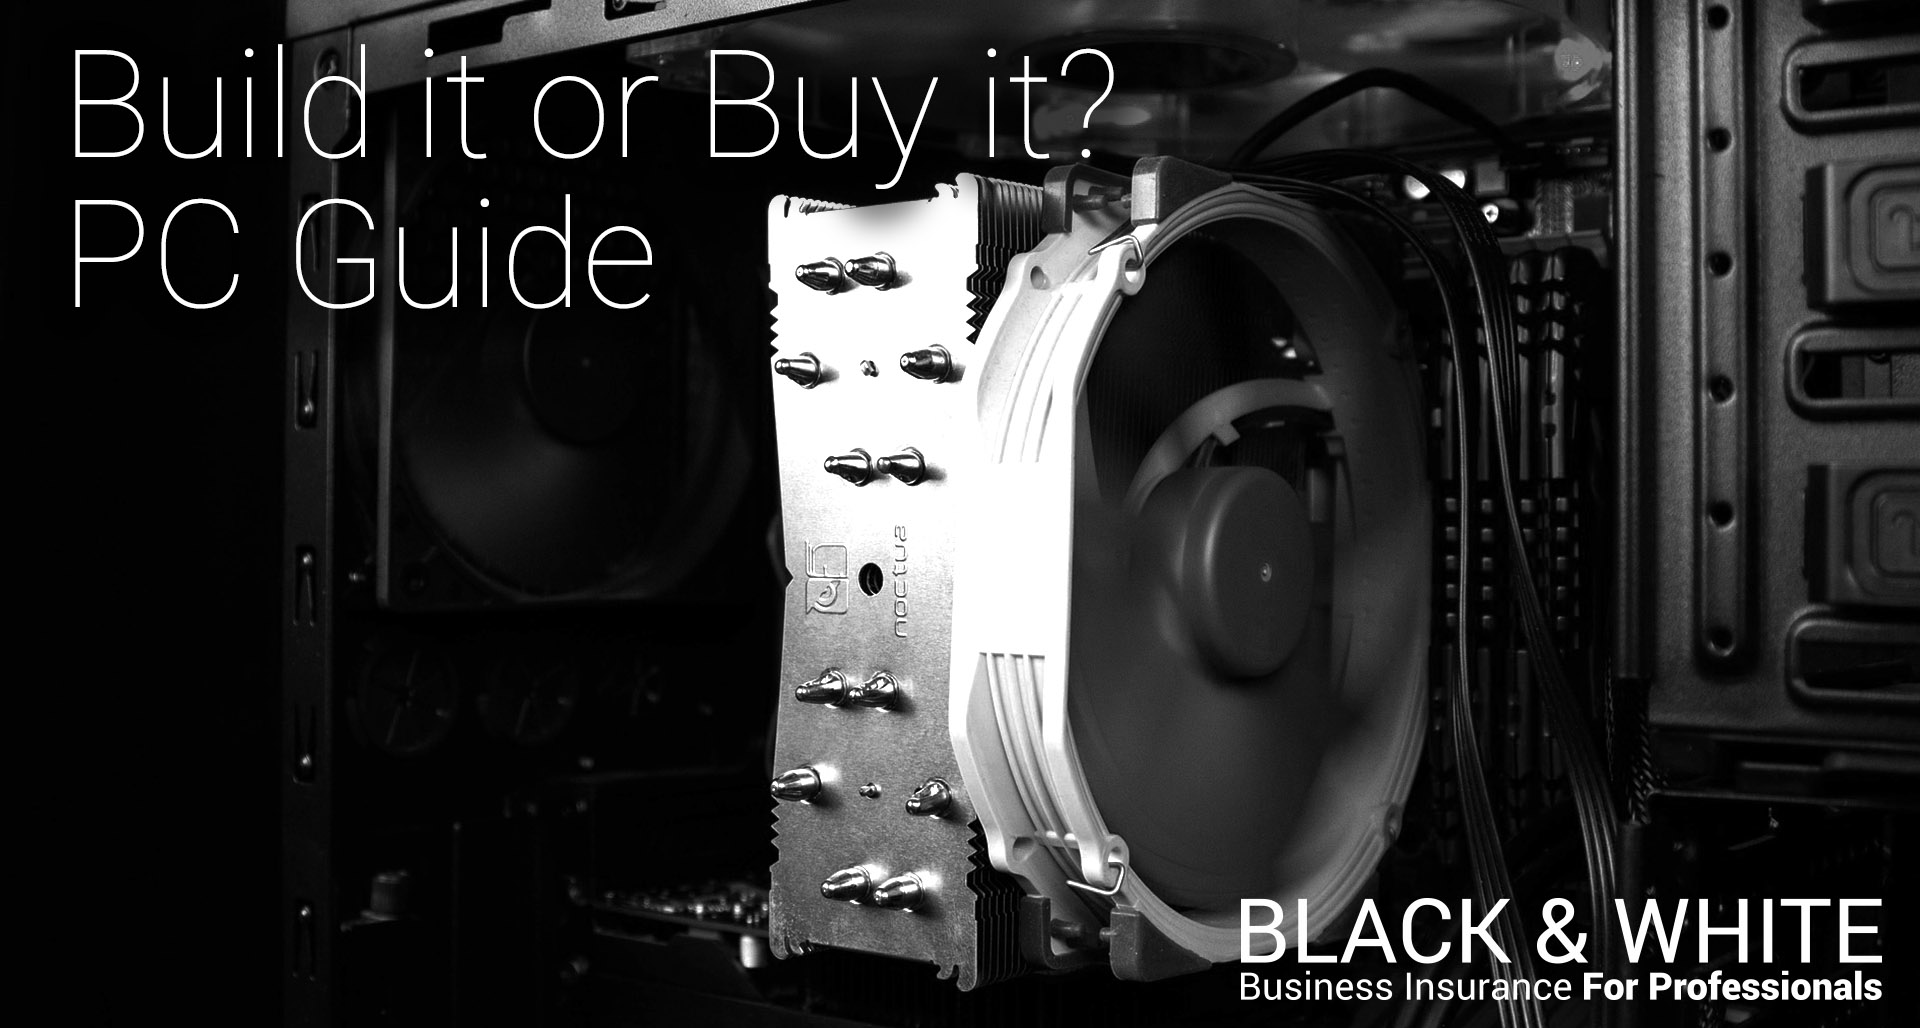 Should you Buy or Build your next PC?